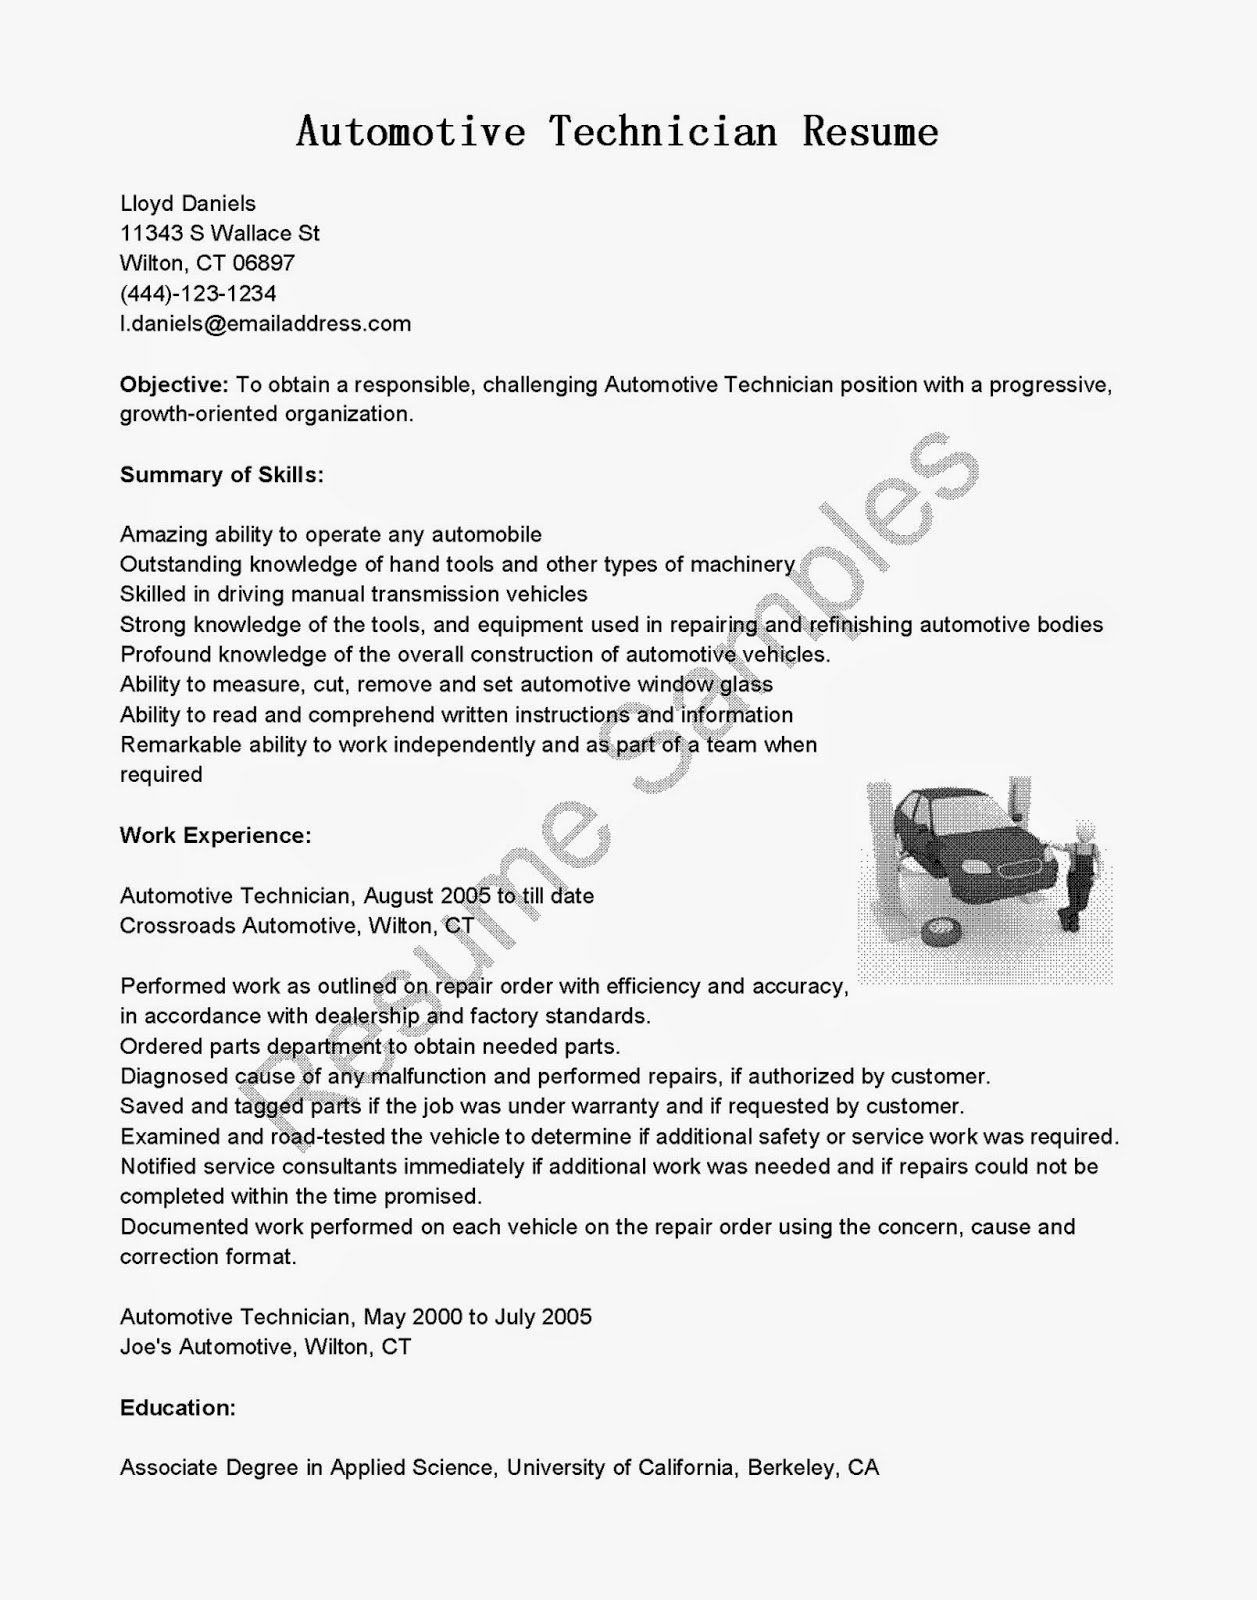 Automotive Technician Resume Resume Samples Automotive Technician Resume Sample